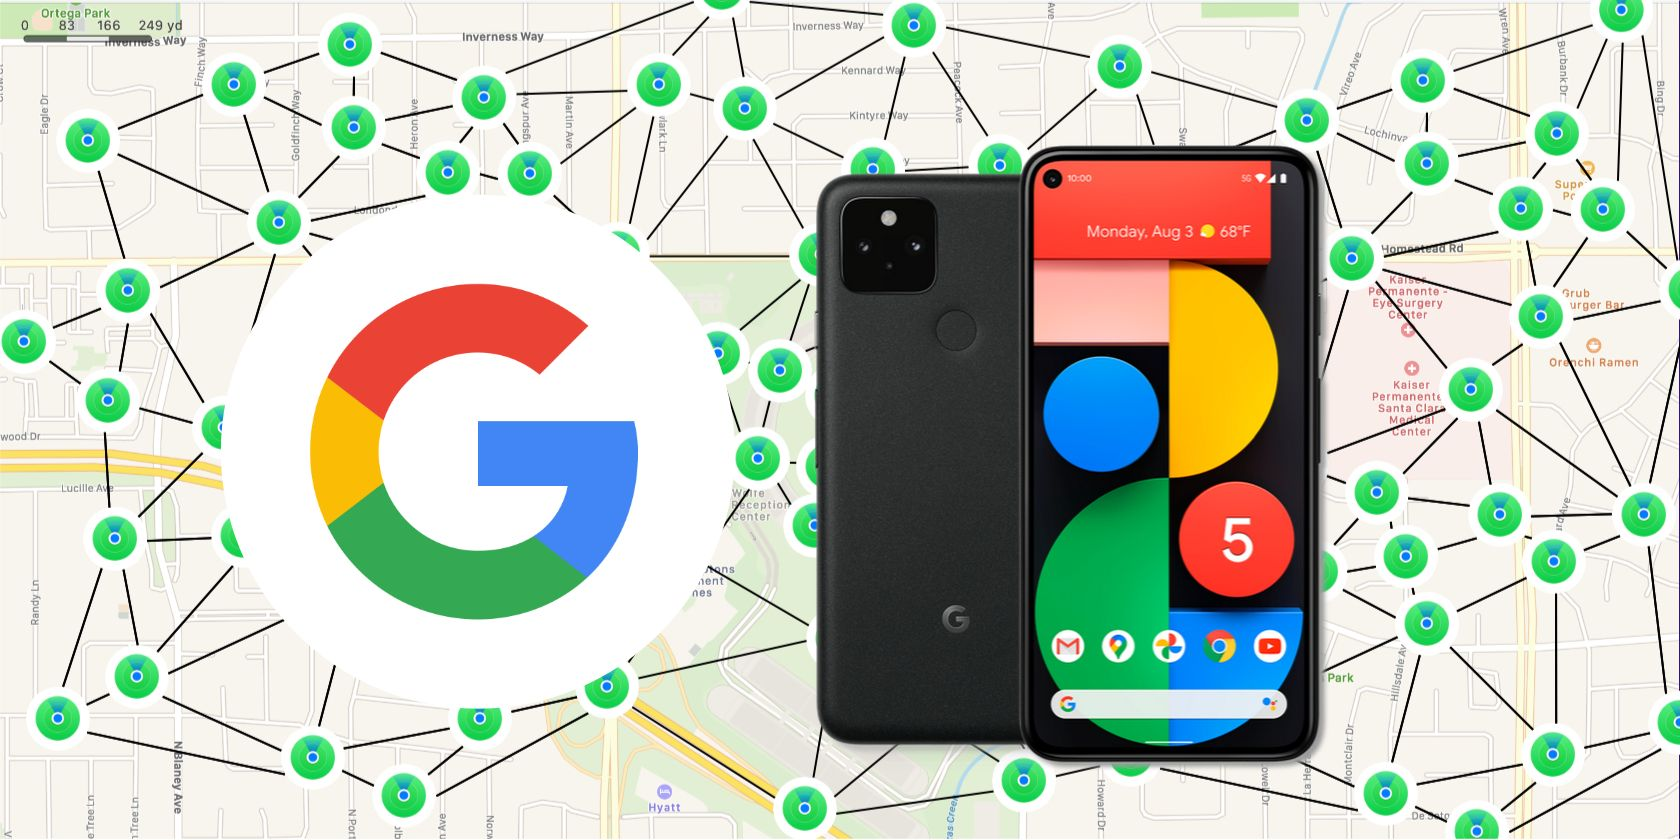 Google Might Be Working on a Rival to Apple's Find My Network